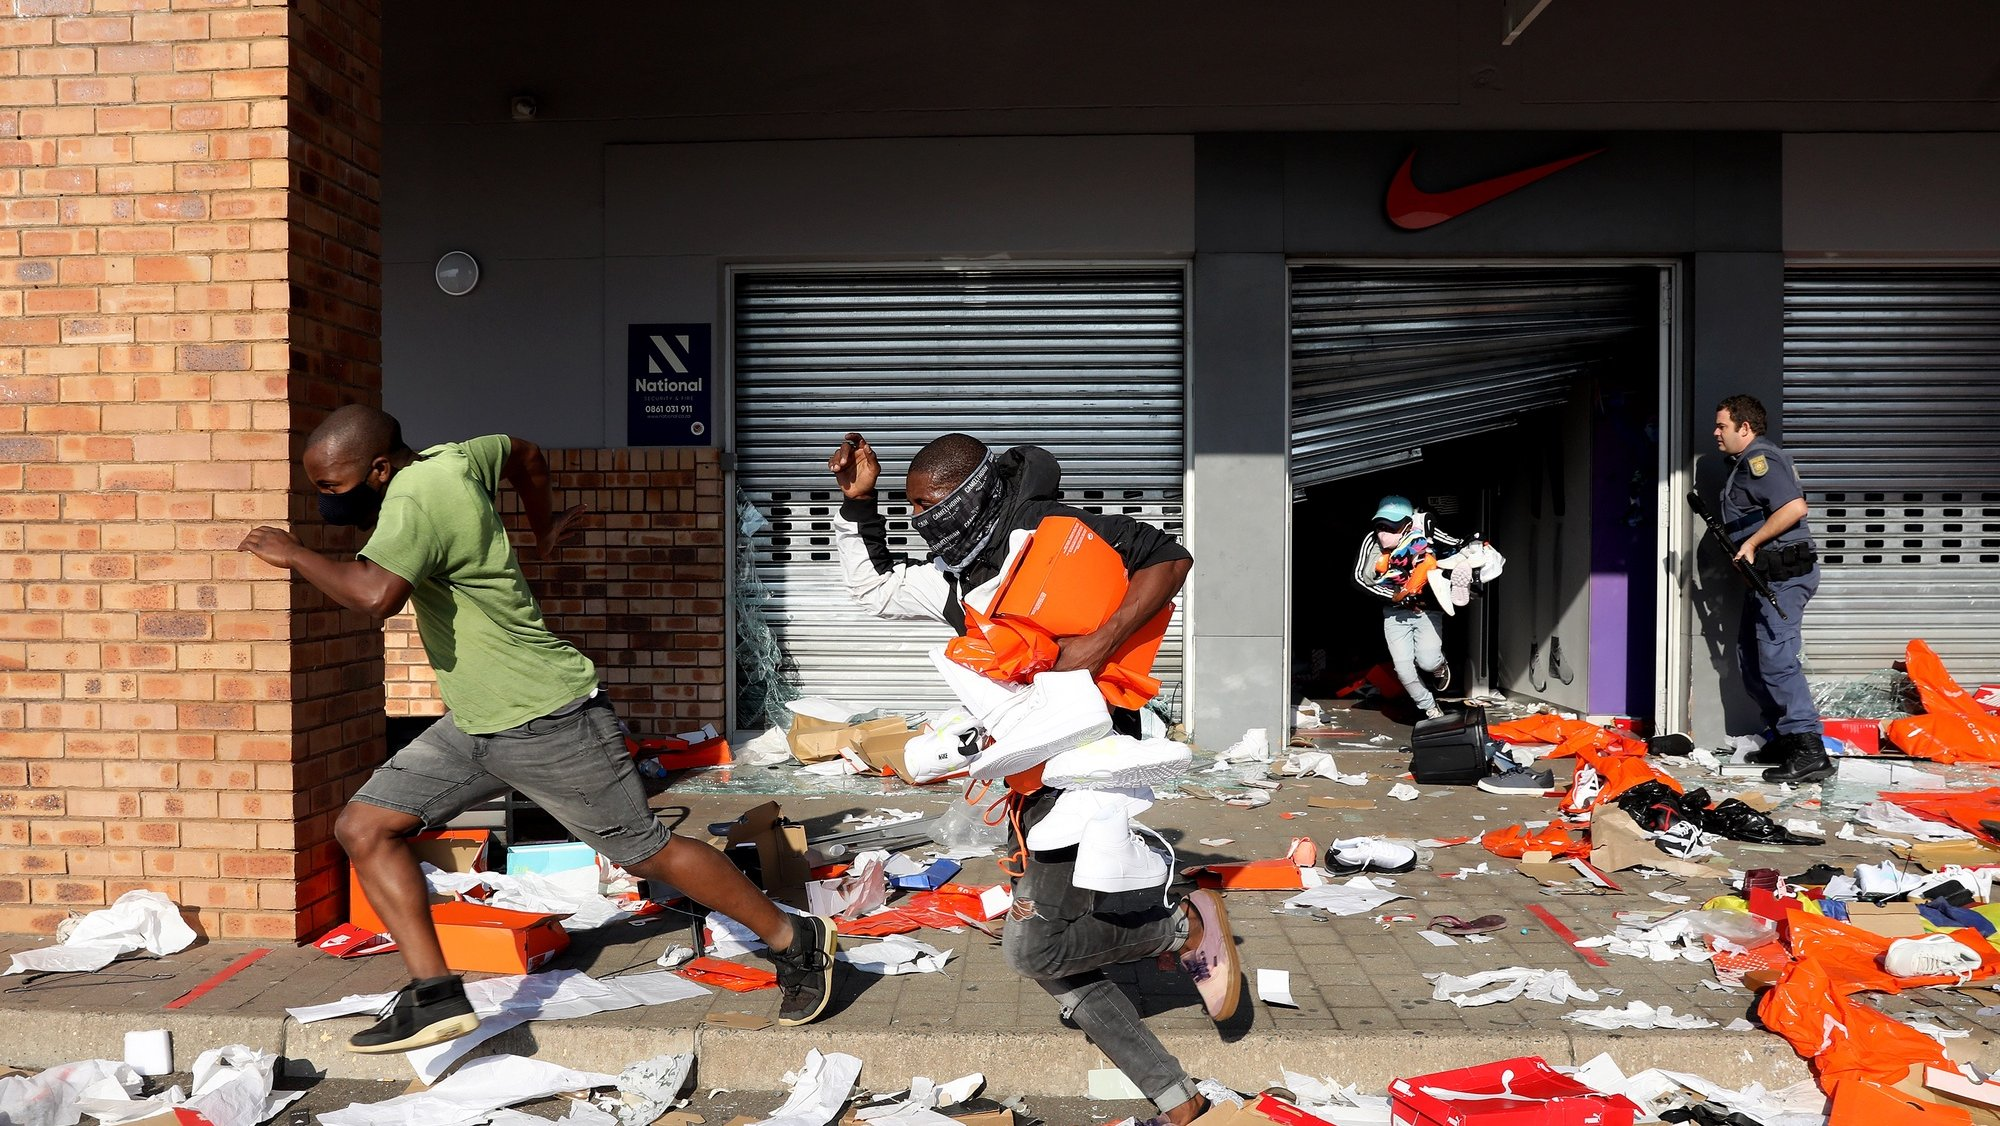 epaselect epa09340528 Looters empty a store of goods in the Springfield Value Centre during protest in, Durban, South Africa, 12 July 2021. Former South Africa President Zuma was arrested on 07 July, and sentenced to 15 months in prison for contempt of court. Protests by his supporters included shops being looted, burned cars and the blocking of city streets in the country.  EPA/STR